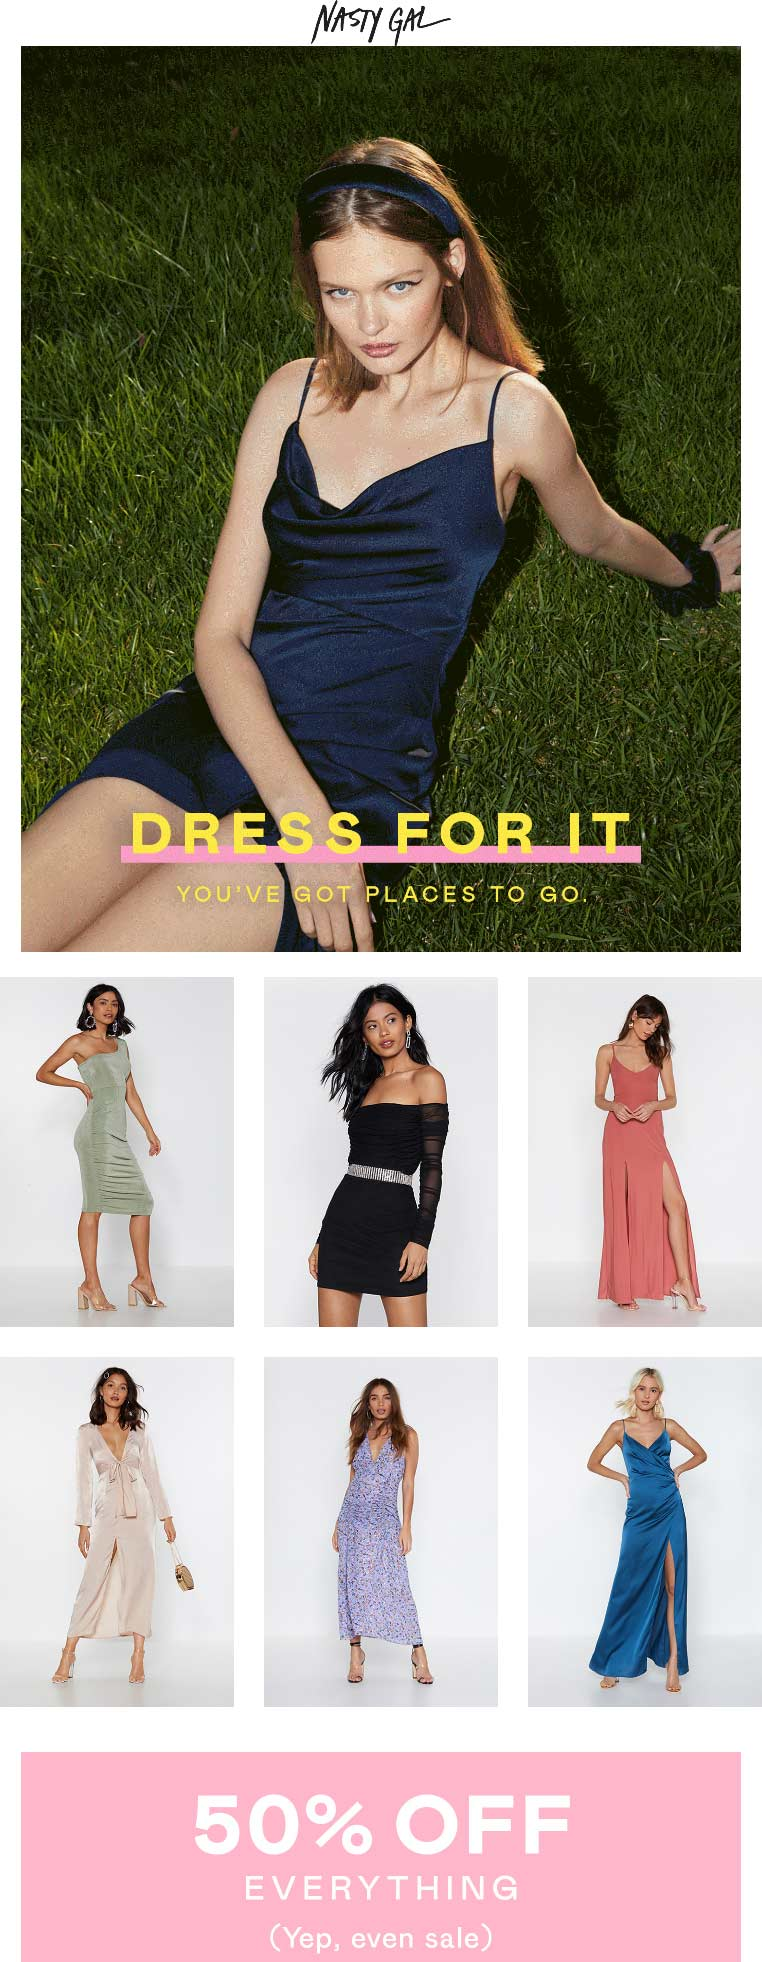 Nasty Gal Coupon June 2019 50% off everything at Nasty Gal